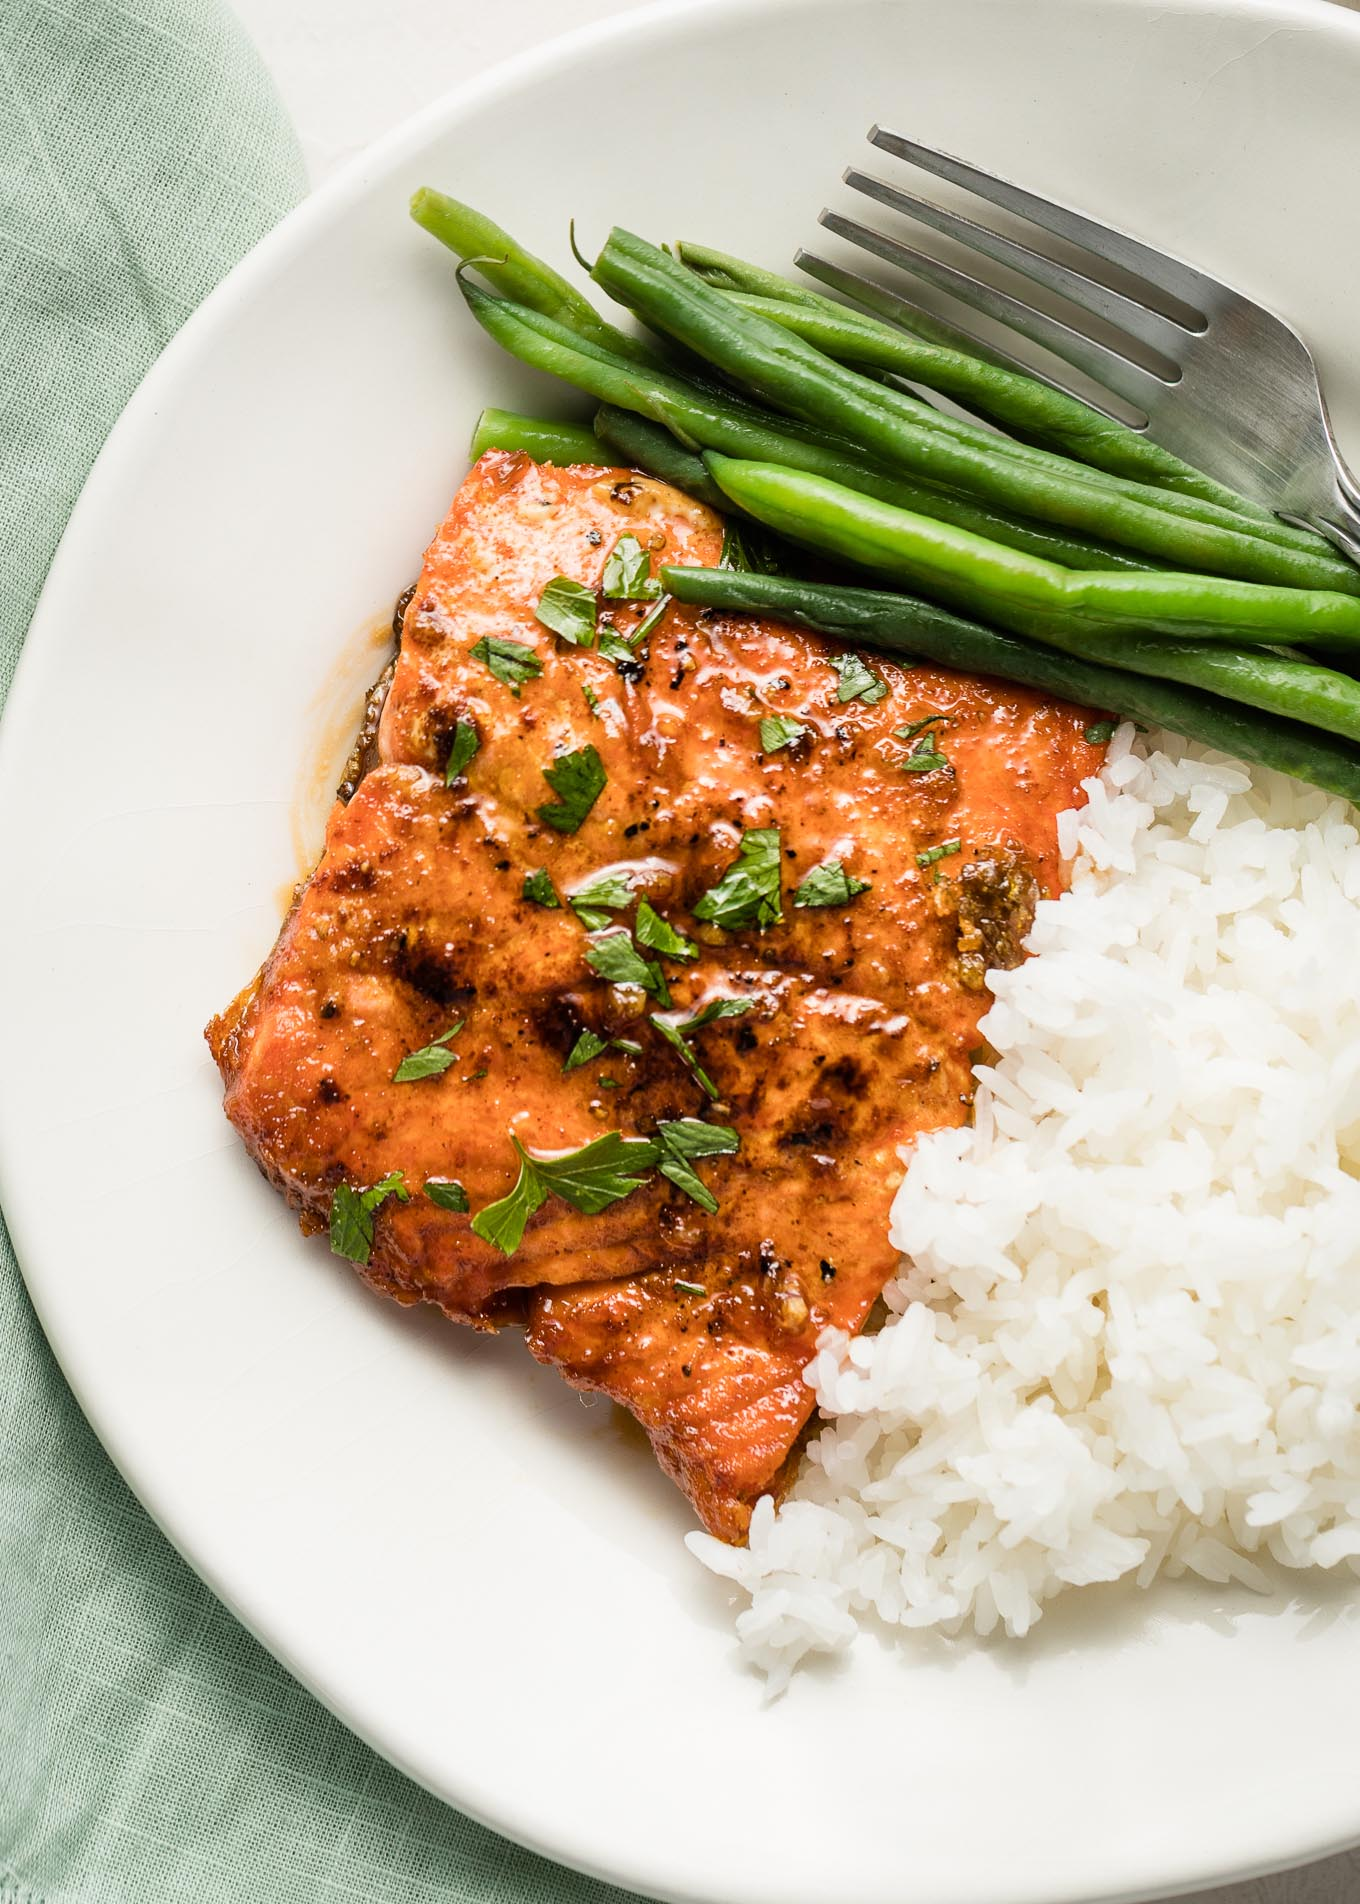 Honey garlic salmon plated with rice and green beans.